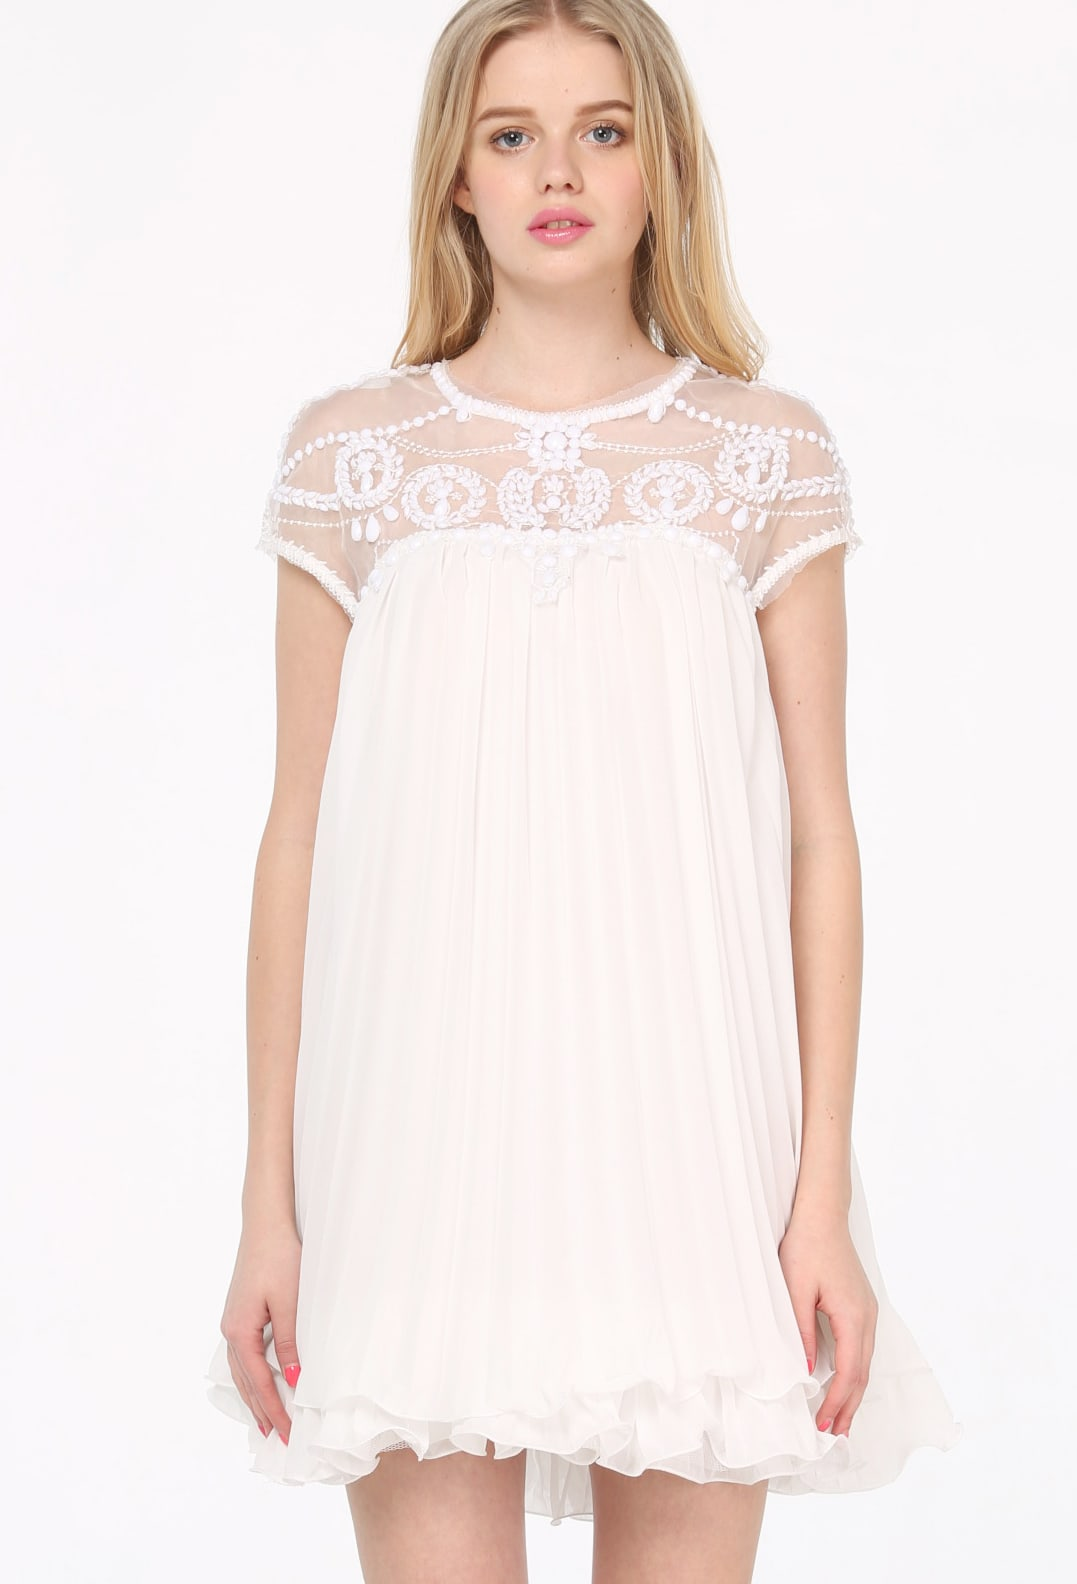 White Lace Pleated Chiffon Dress